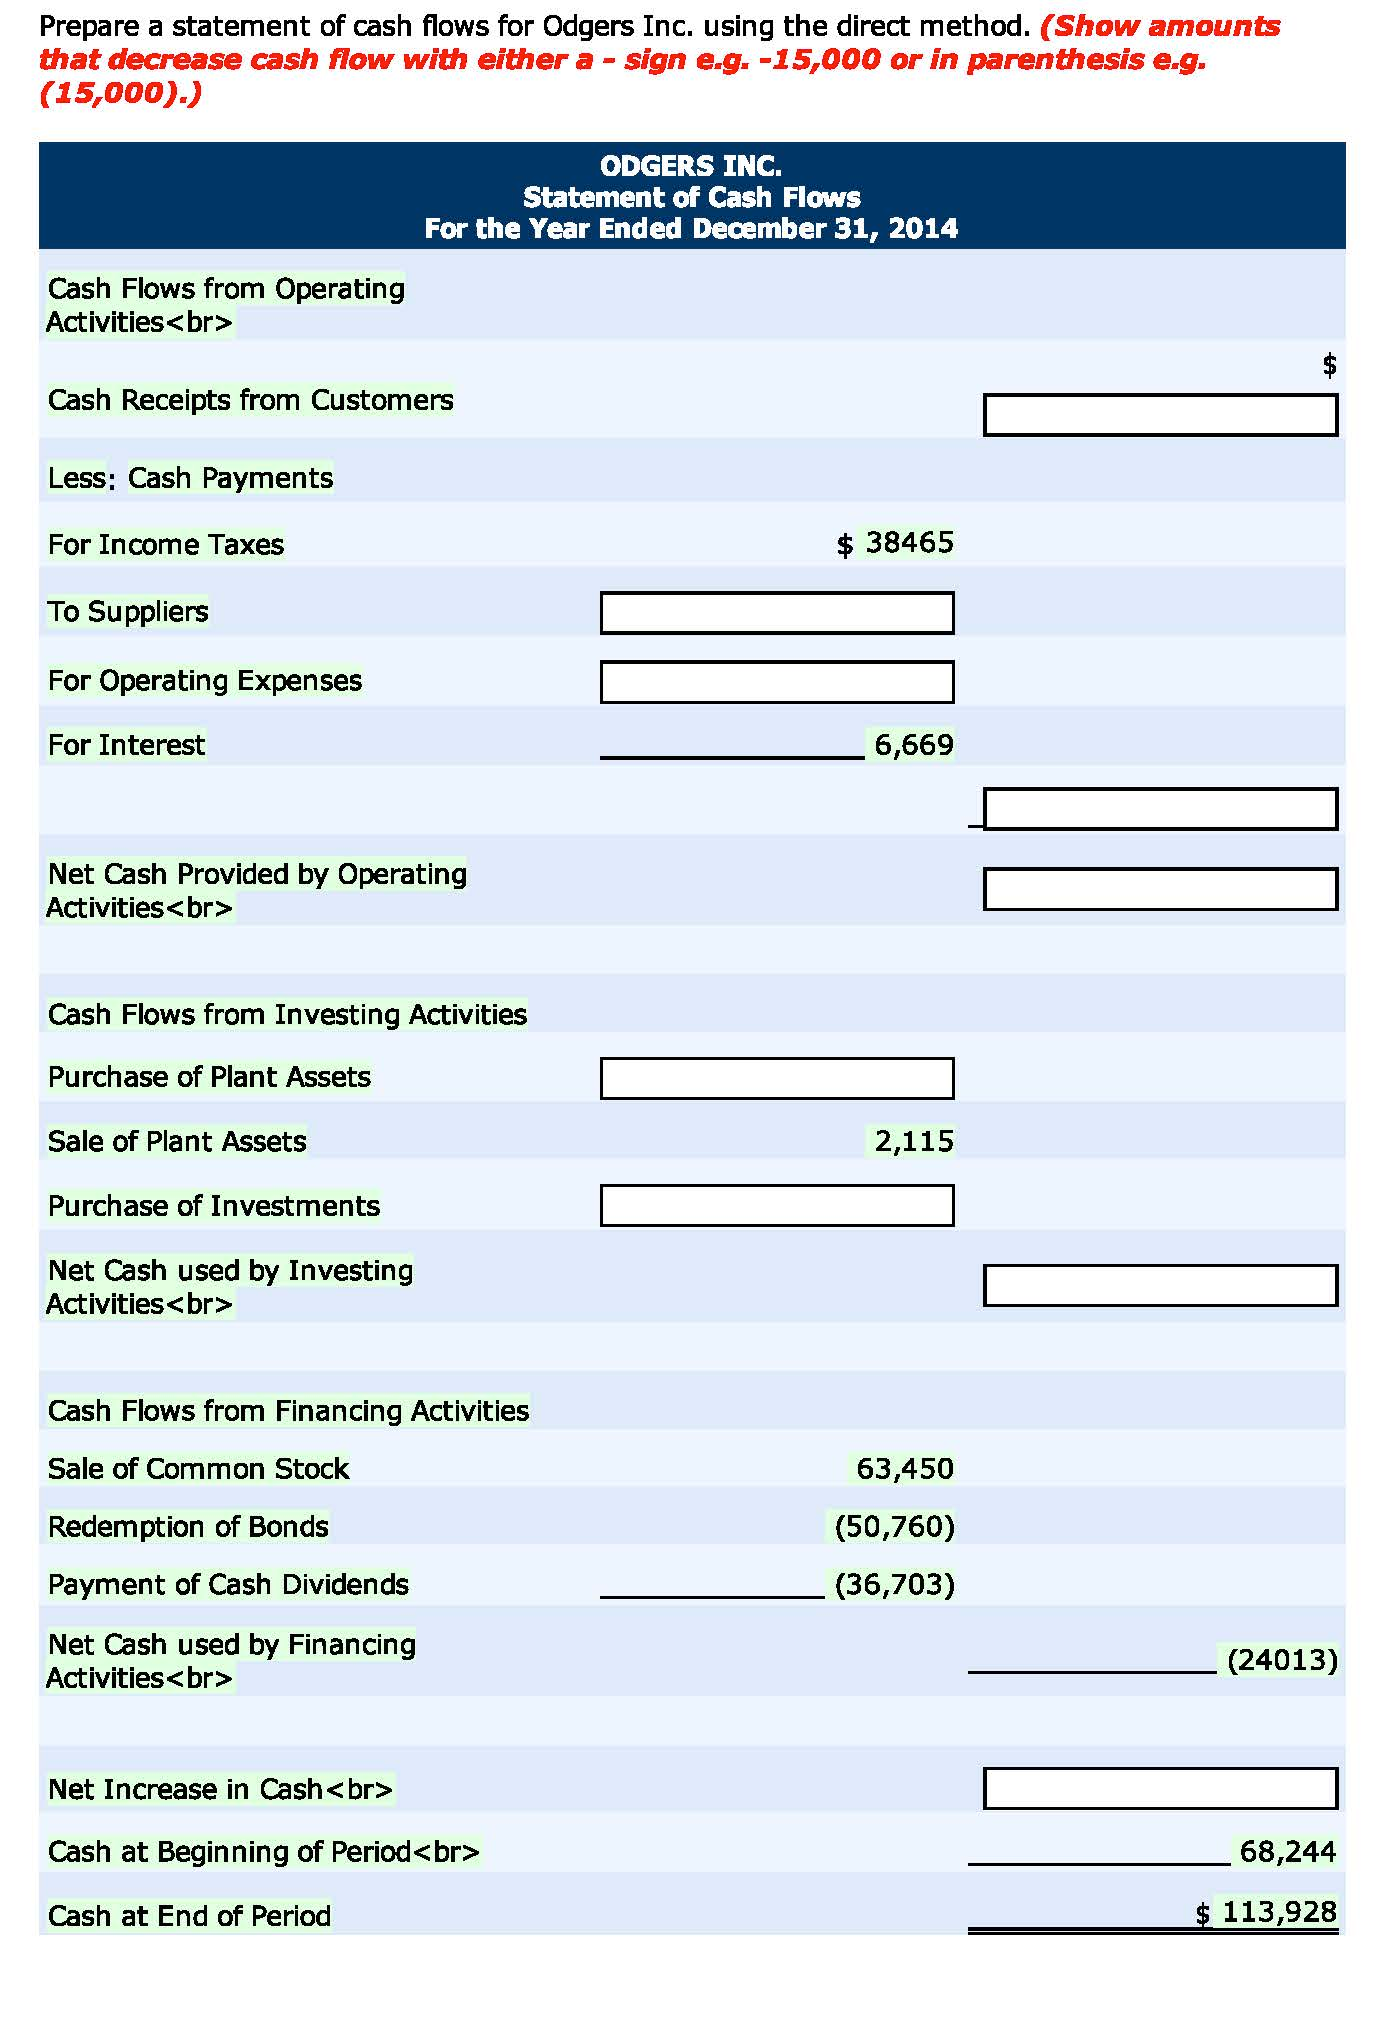 prepare a cash flow statement using the indirect method